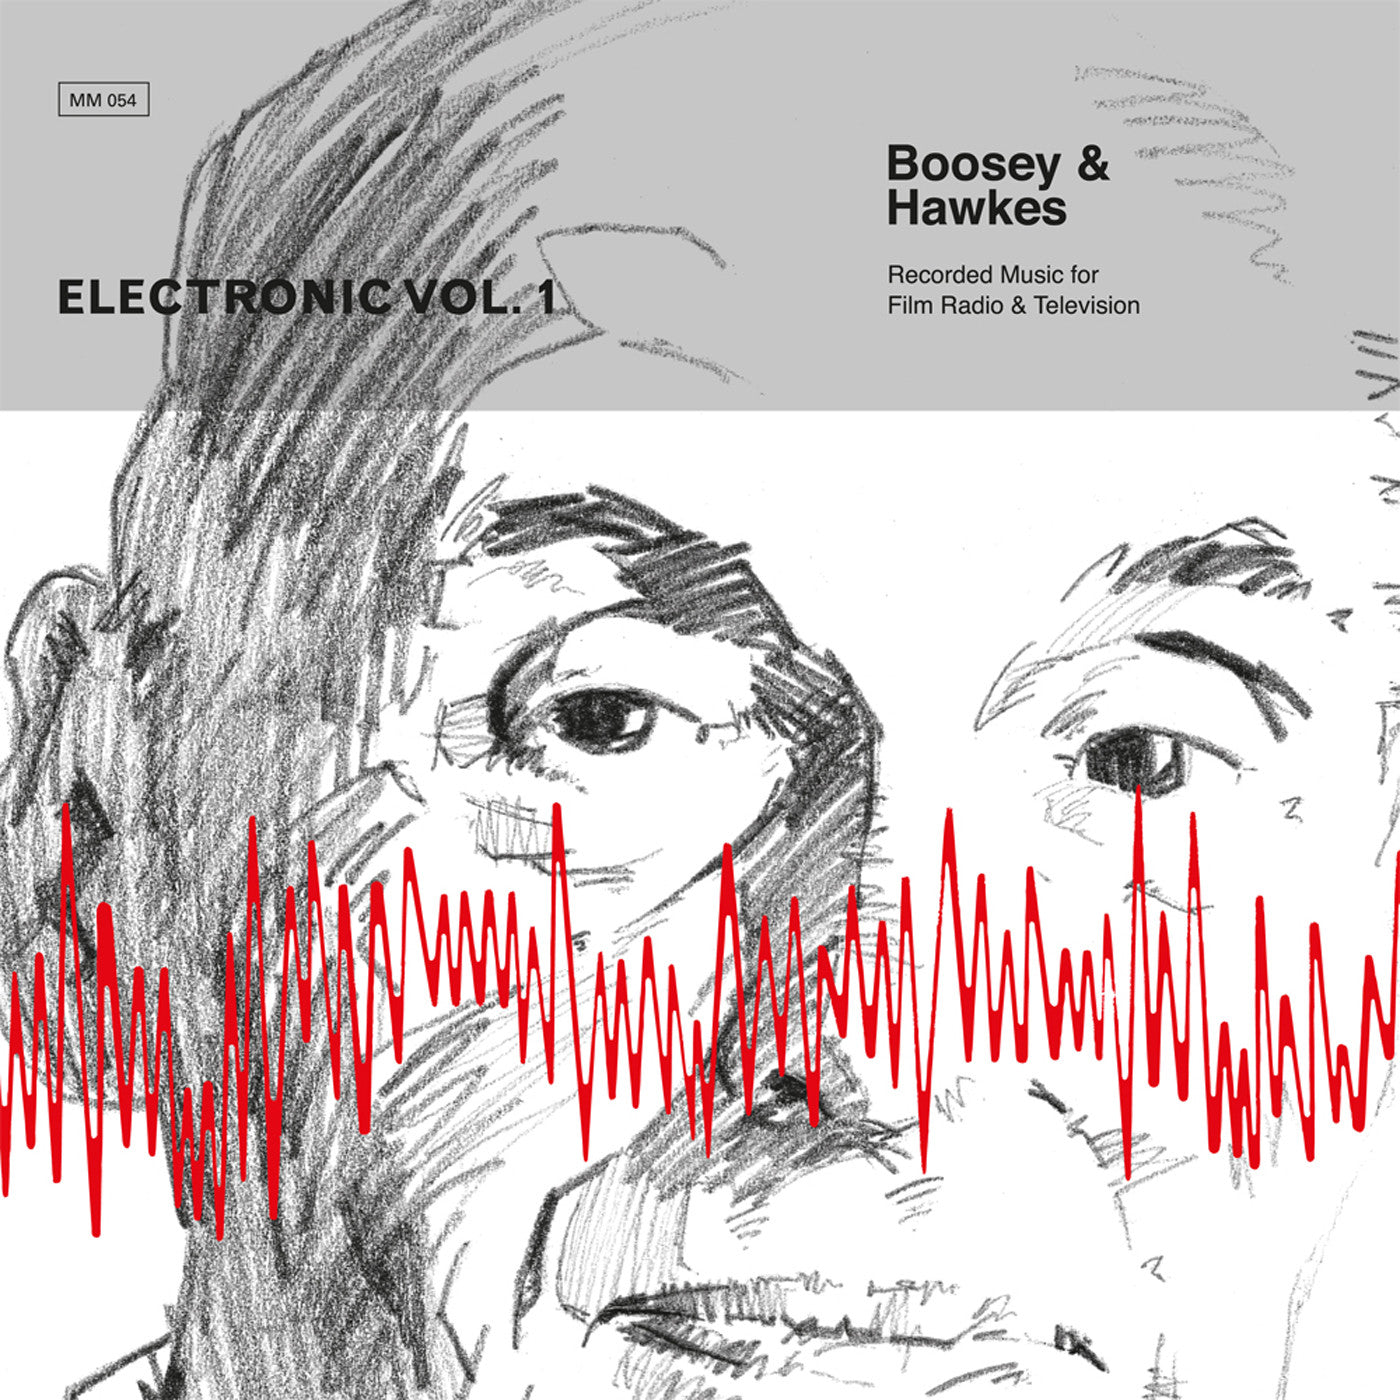 Tod Dockstader Electronic Vol 1 Recorded Music For Film